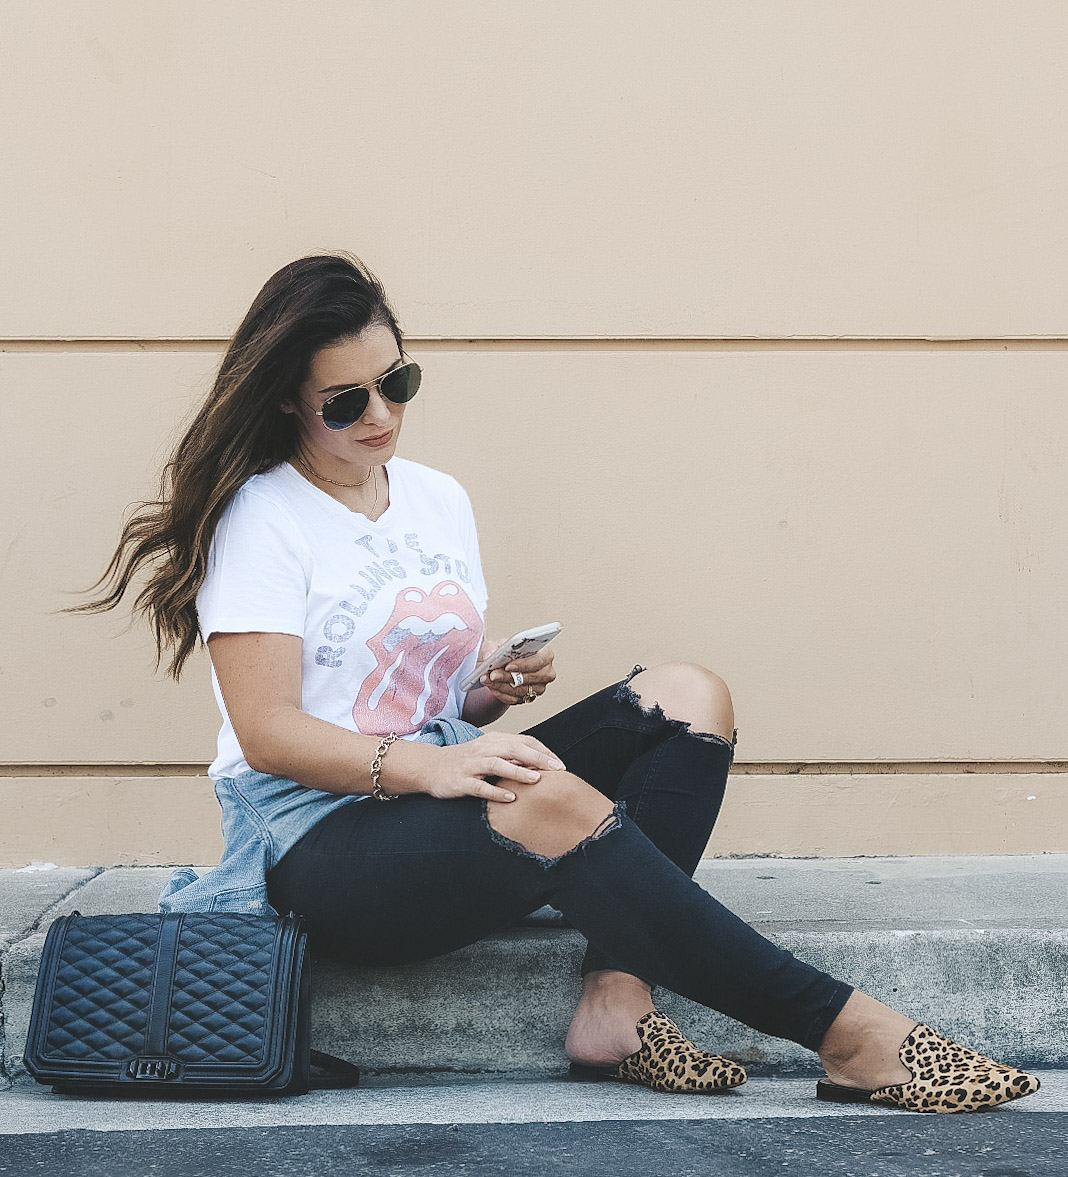 Leopard shoes and accessories for fall 2018.  Steve Madden Velocity mules, Rebecca Minkoff love crossbody bag, Free People busted knee jeans, Rolling Stones tee, and Ray-Ban aviator sunglasses.